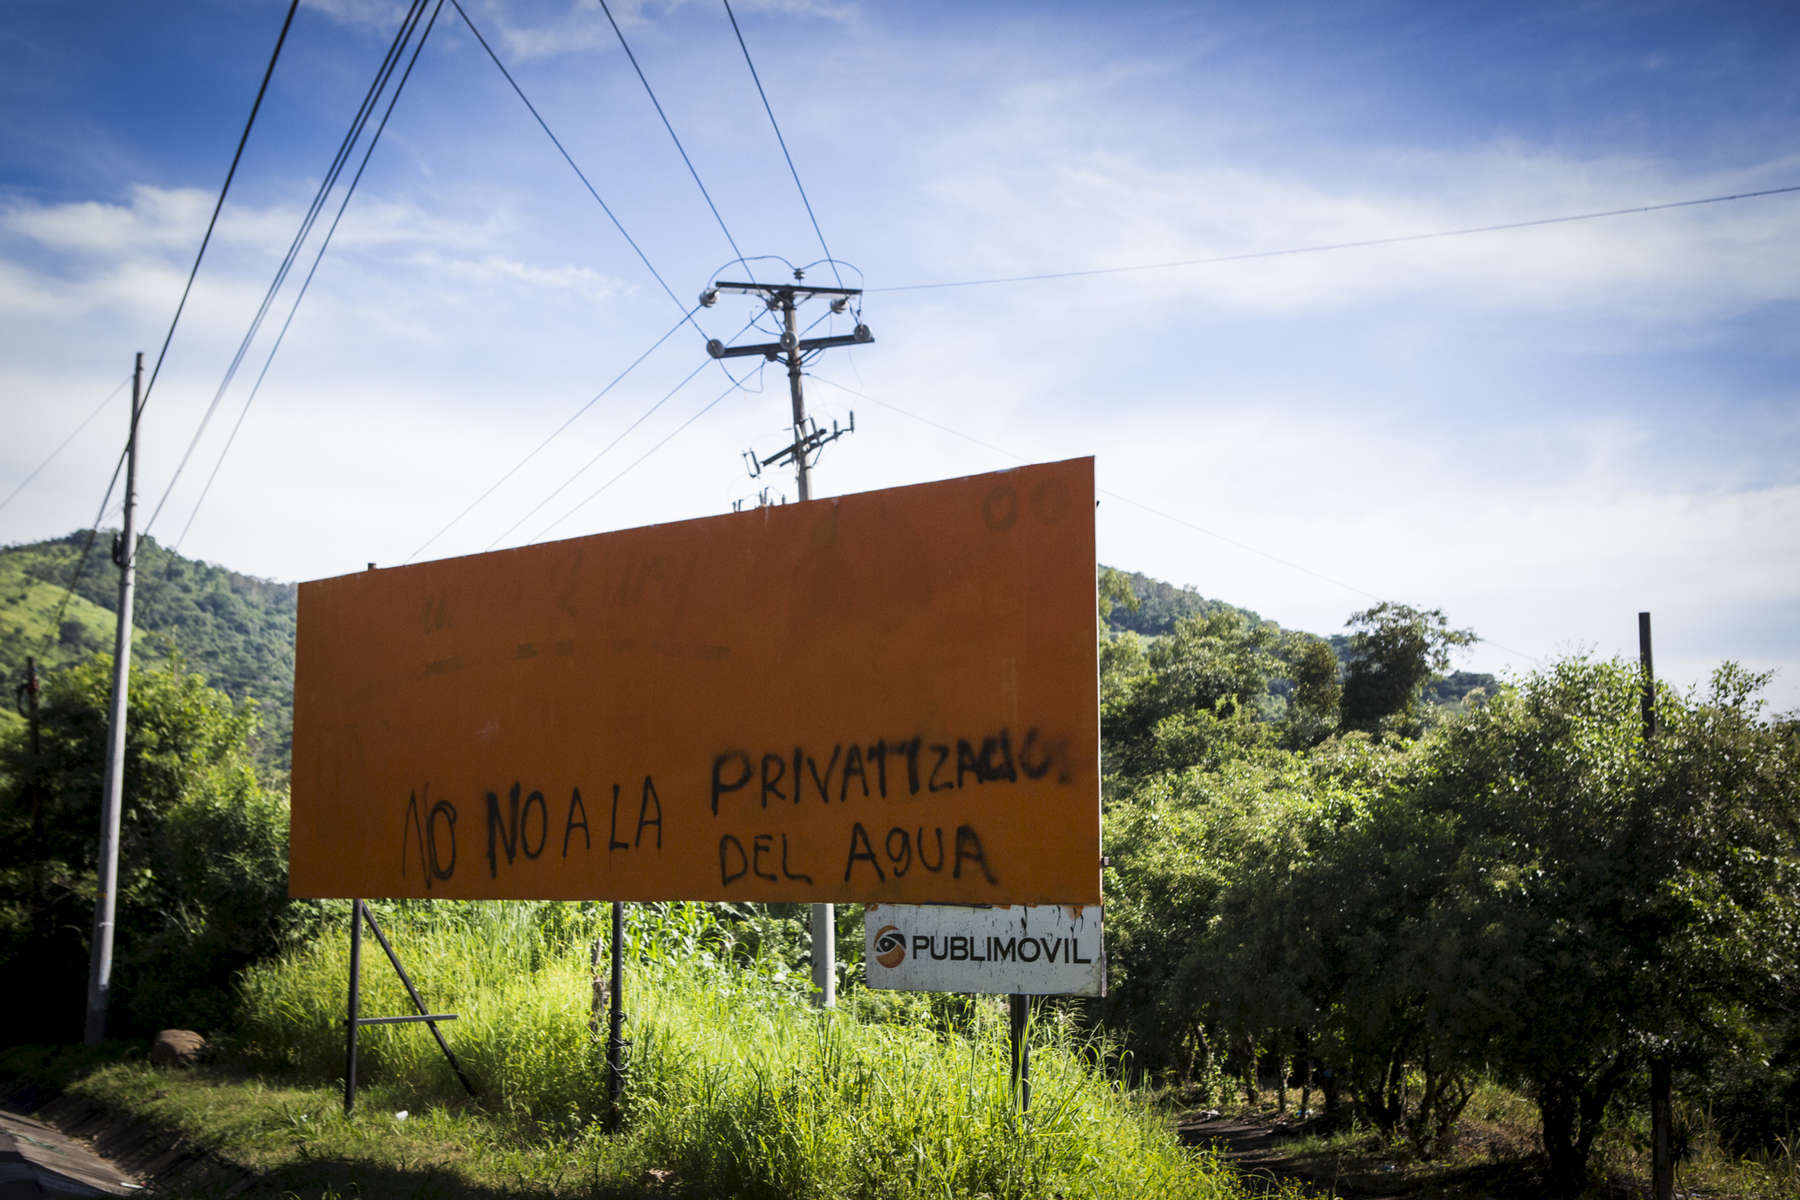 Tanacatepeque, El Salvador- A billboard with the message {quote}No to the privatization of water{quote} along the road in Tanacatepeque, El Salvador on Sunday, June 24, 2018. (Jane Hahn)